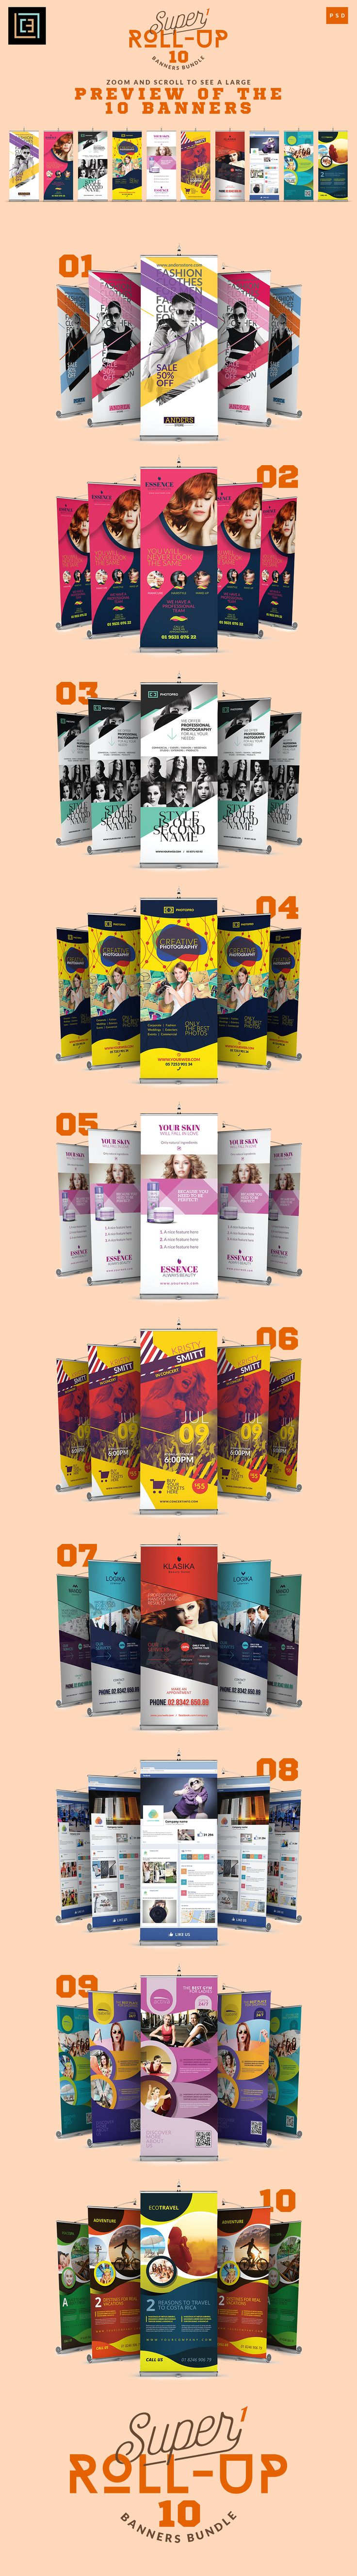 Super 1 - Roll-Up Banners Bundle by Cooledition on @creativemarket